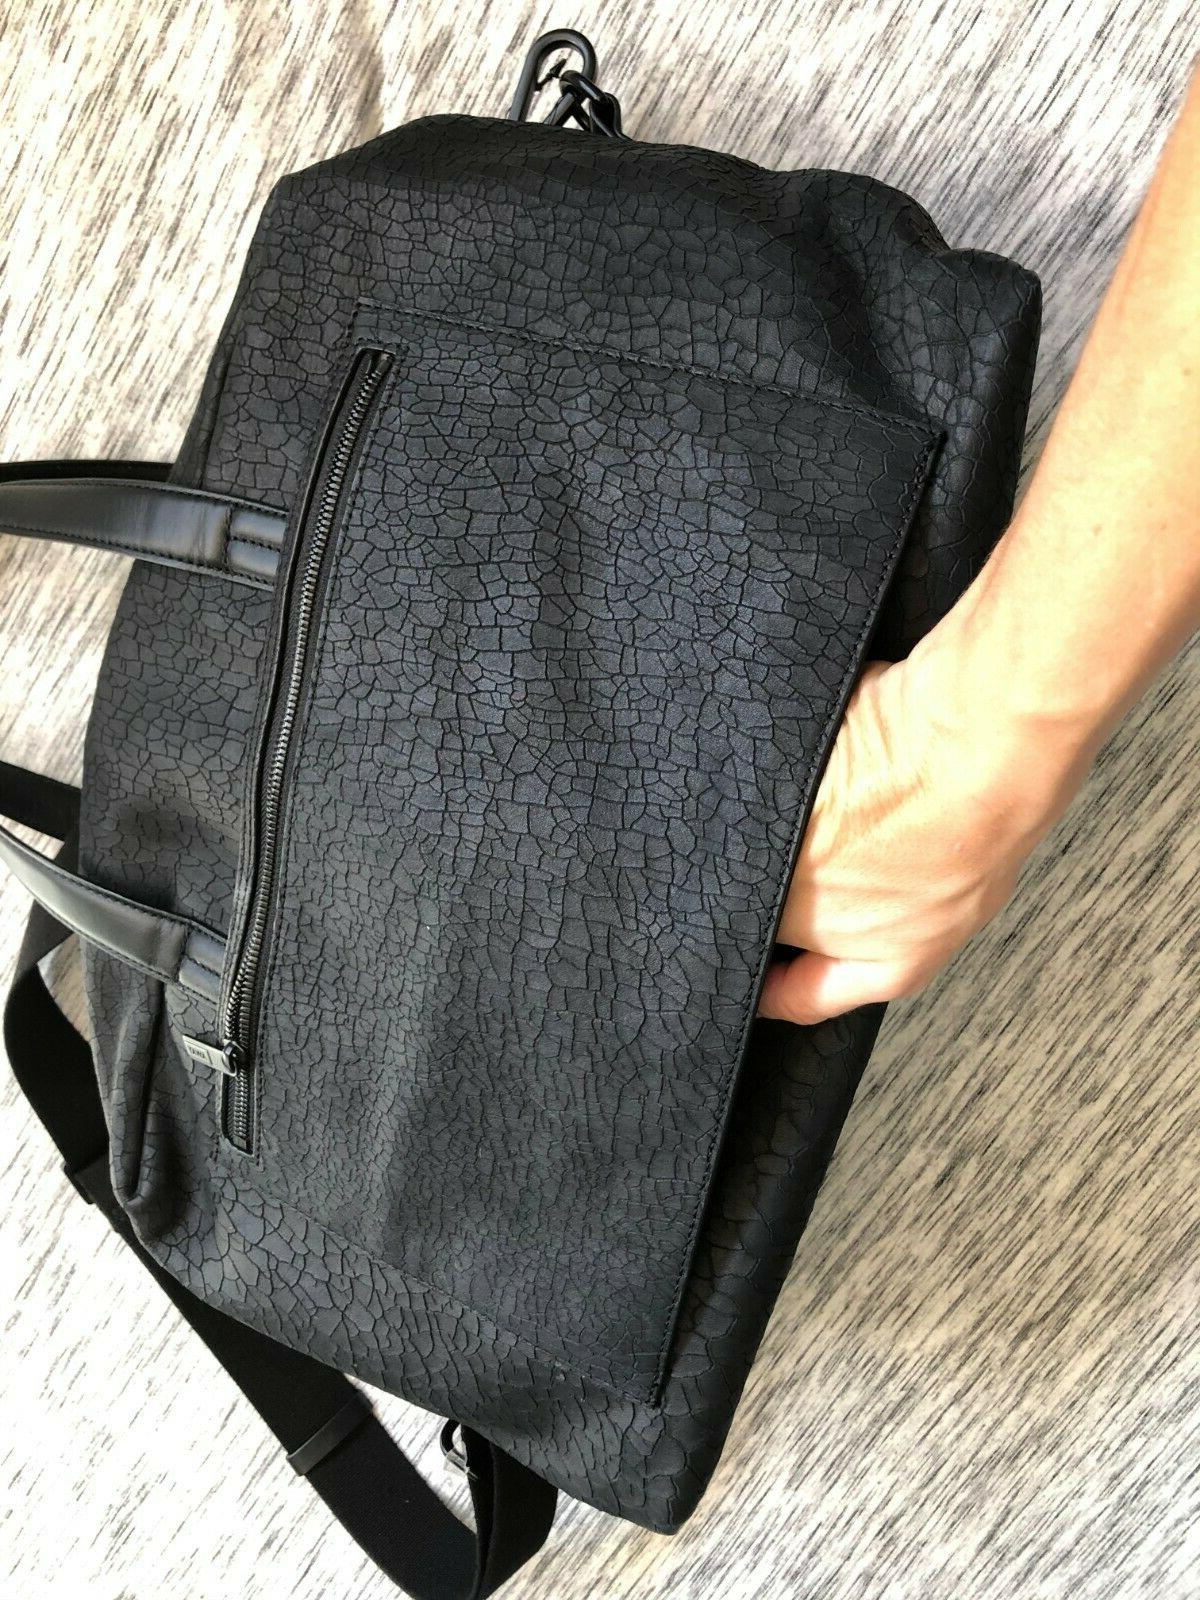 Away Everywhere Bag Luggage Travel Carry Black Crackle edition